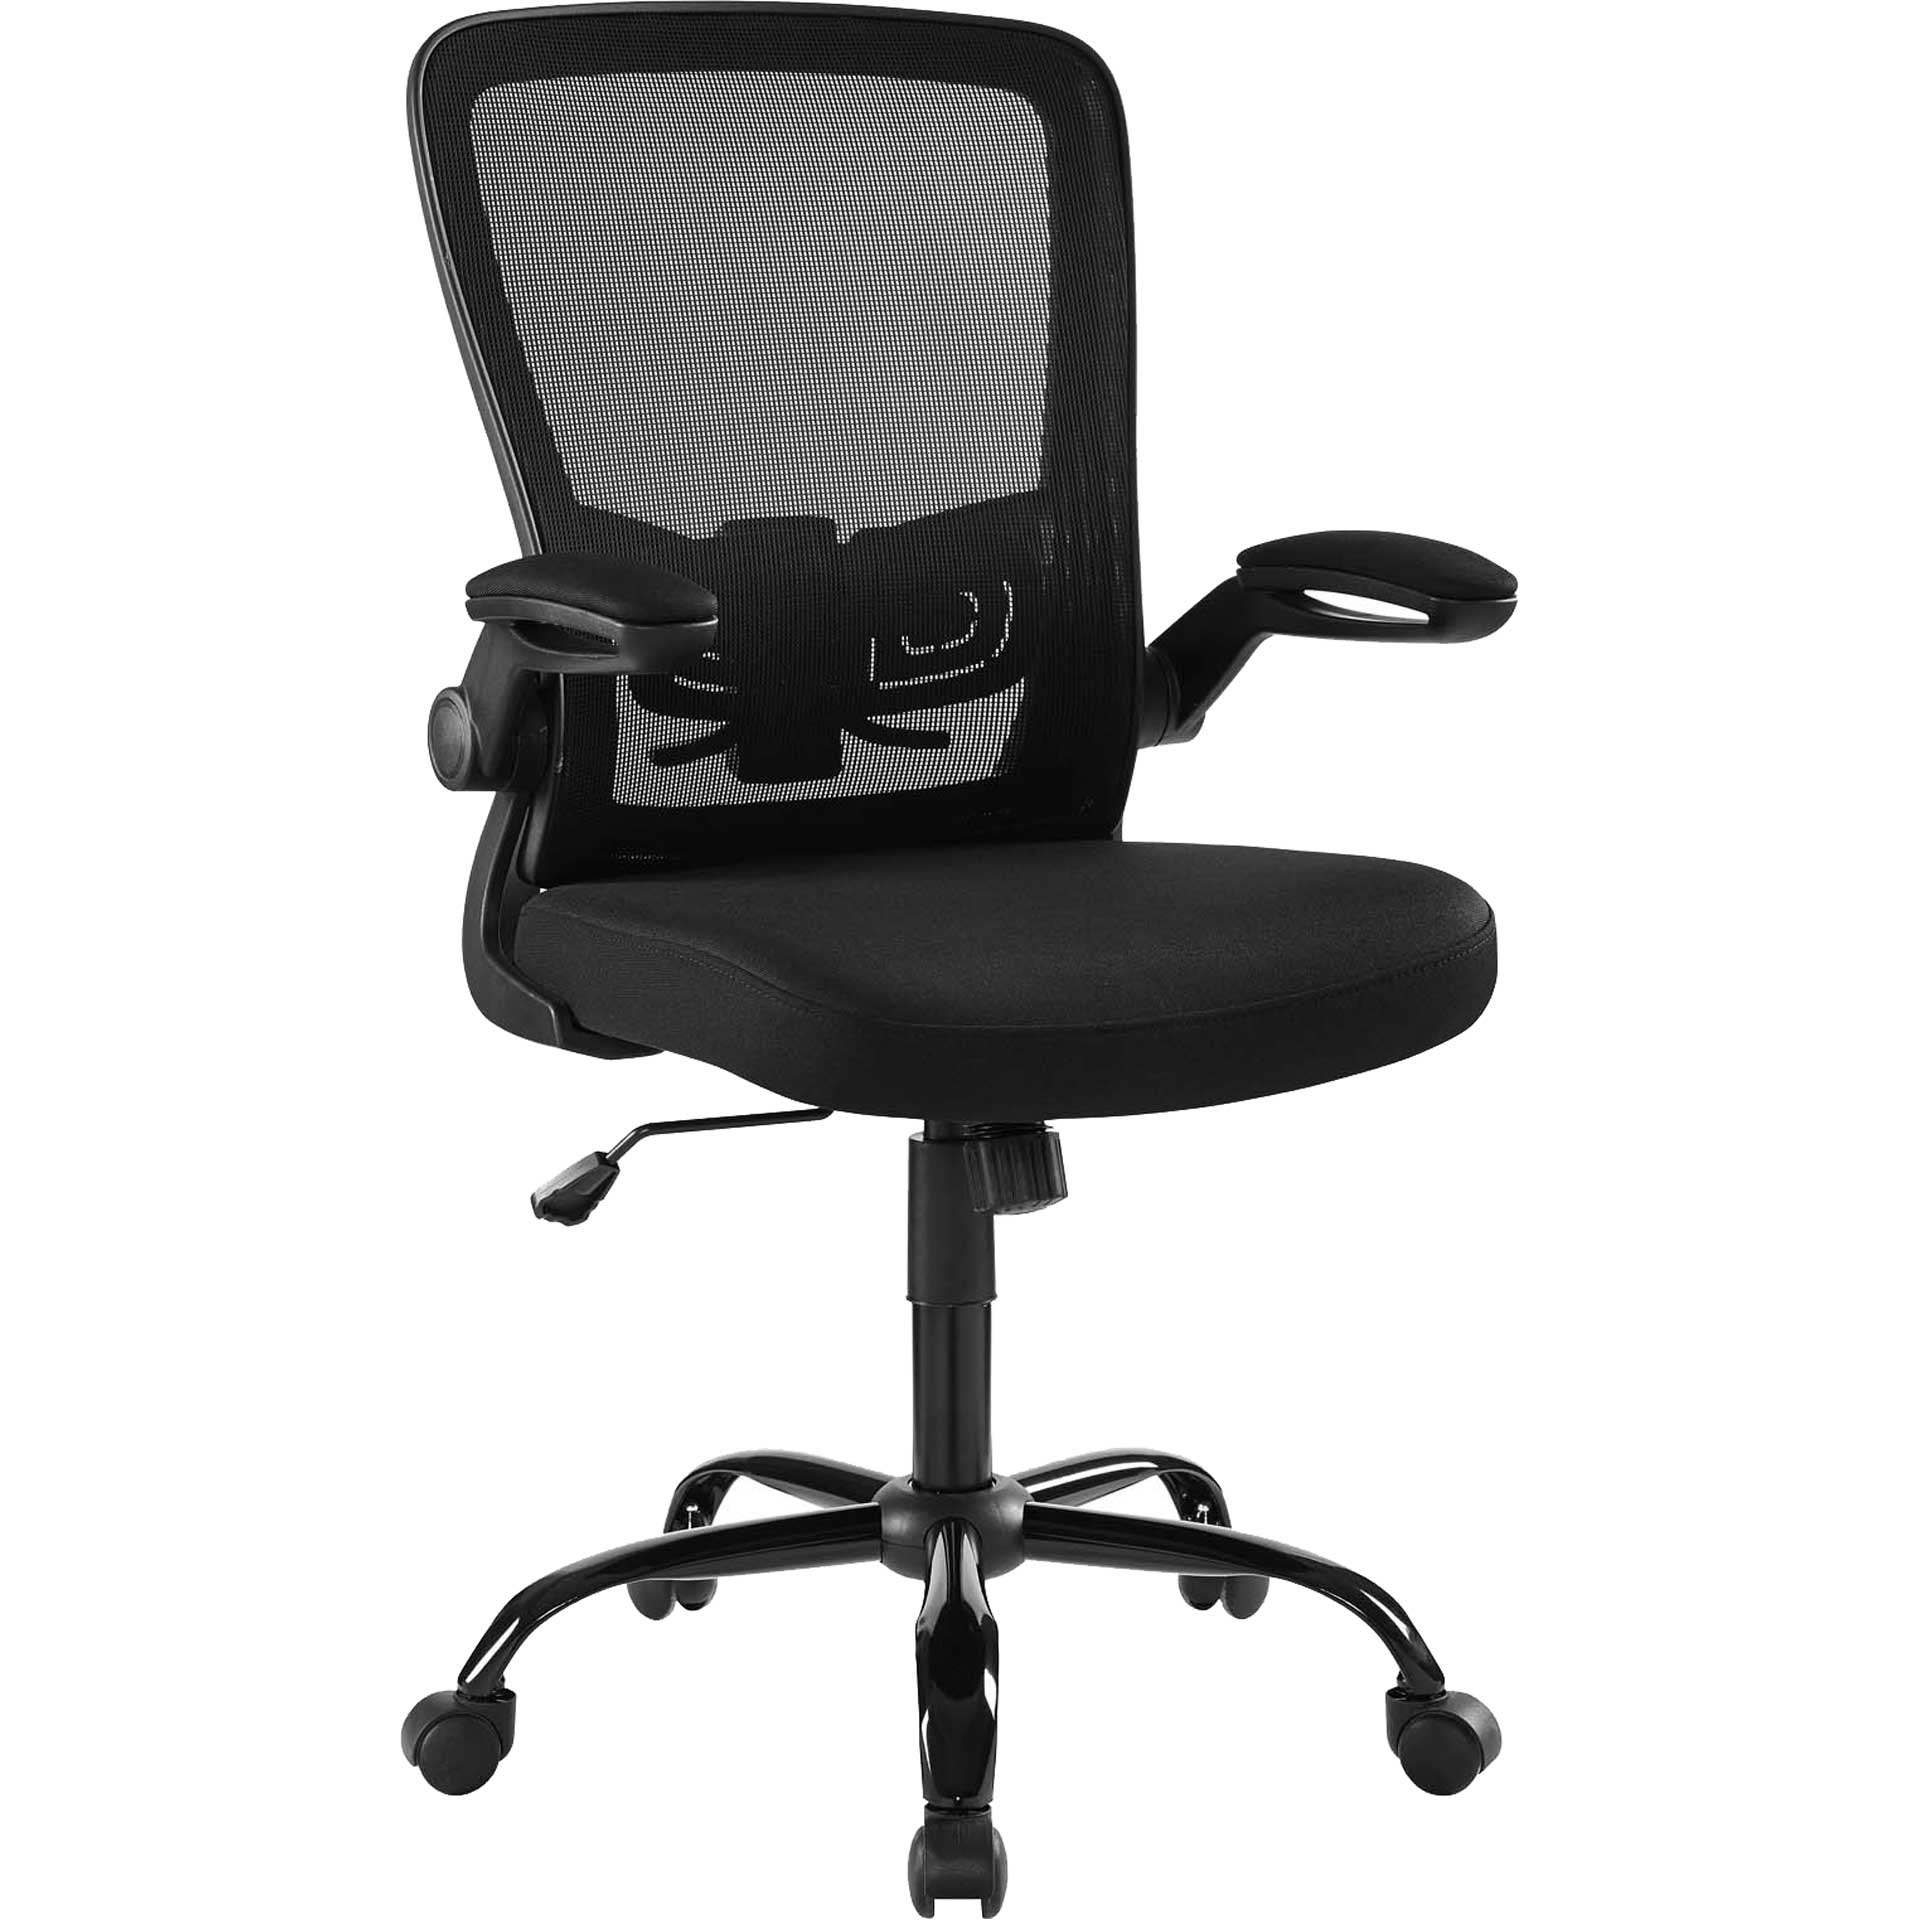 Estero Mesh Office Chair Black